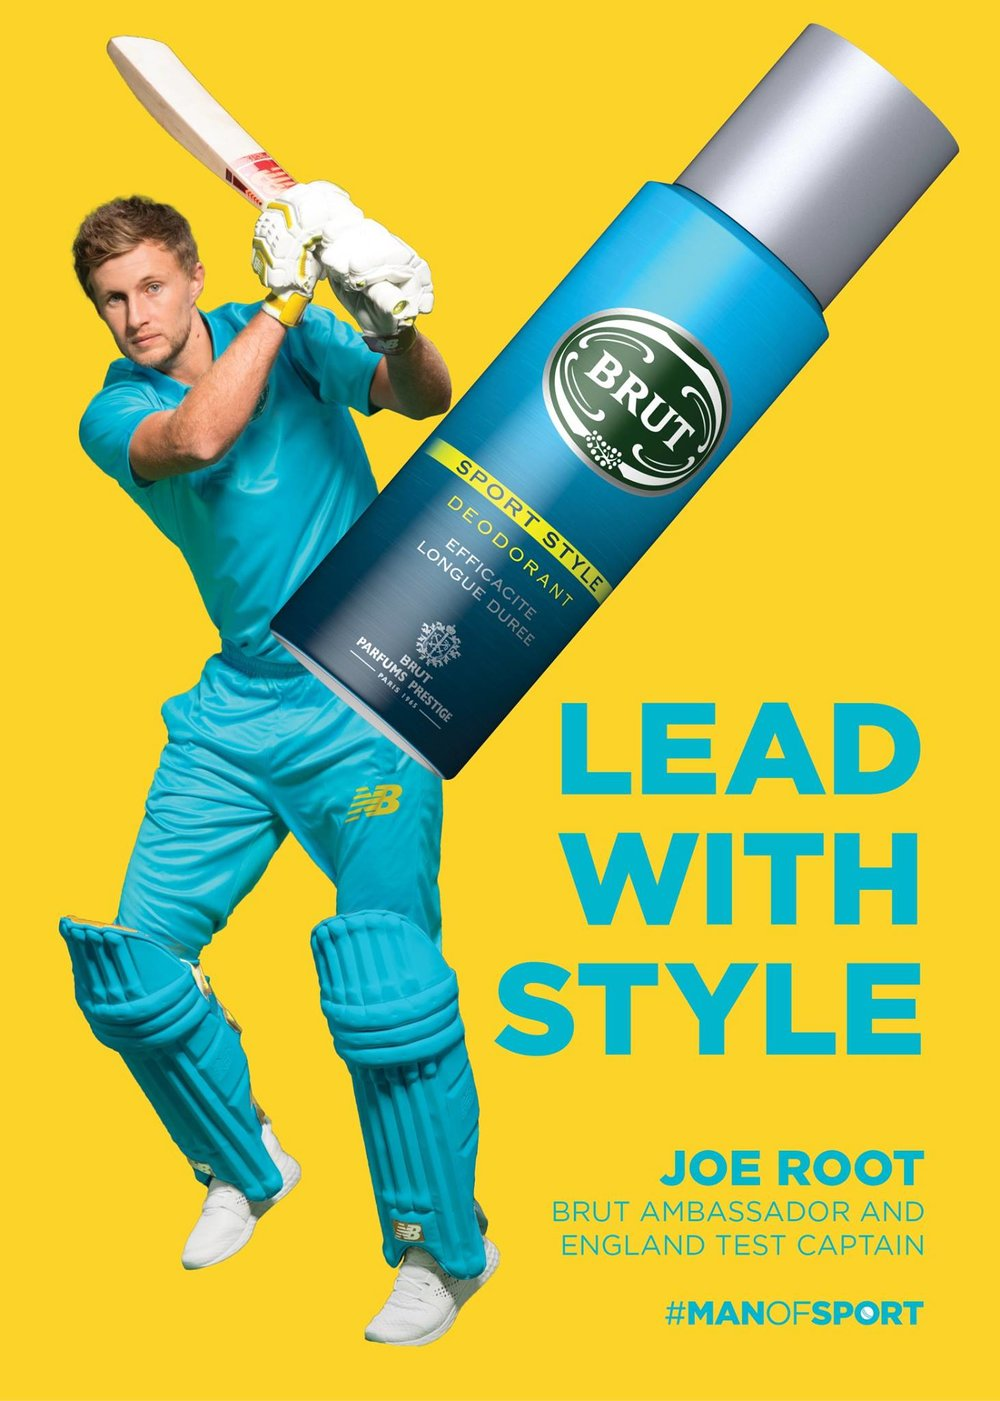 BRUT JOE ROOT AND JIMMY ANDERSON